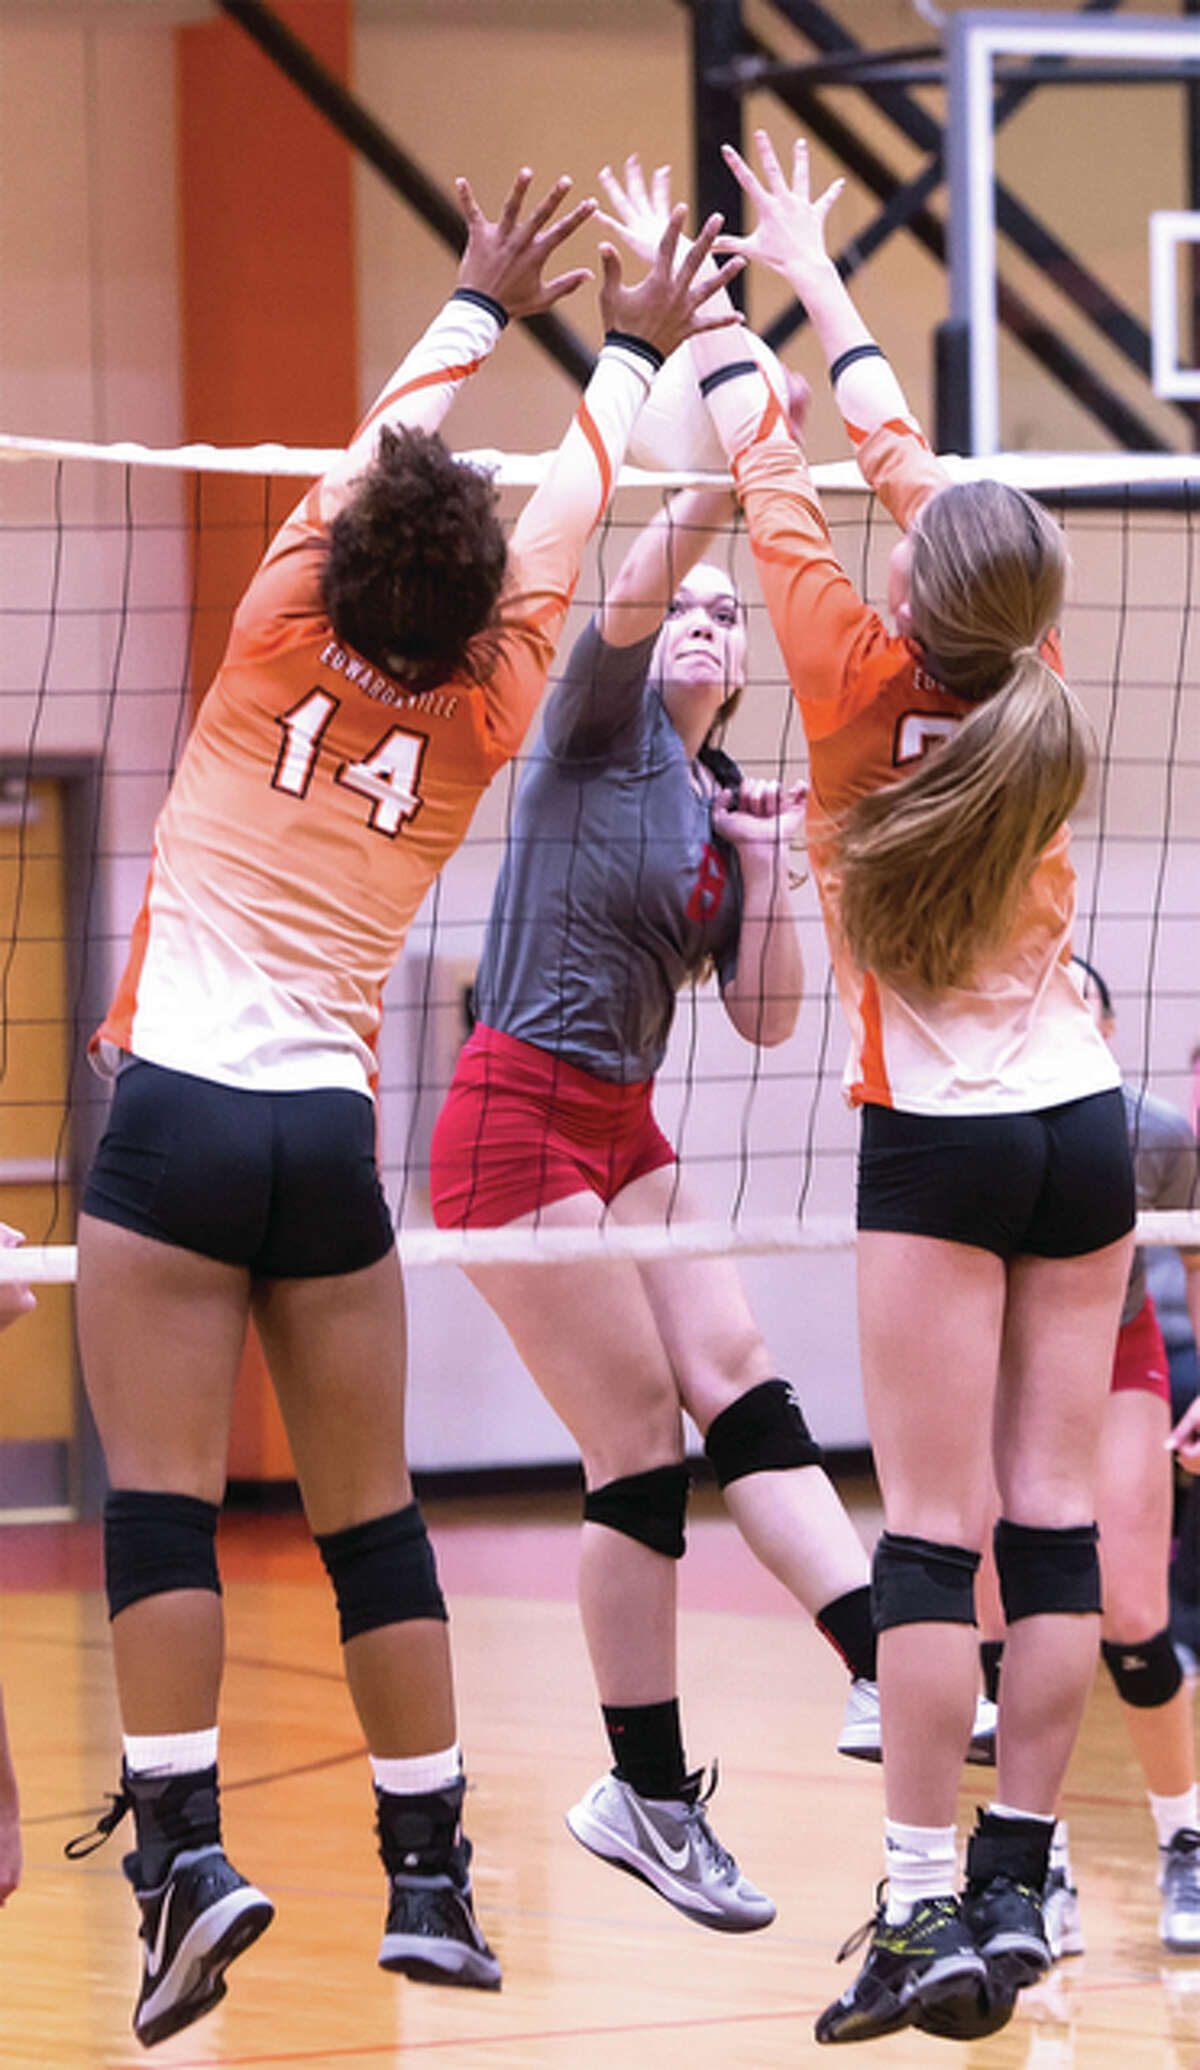 Alton's Saddi Brands (middle) hits into the block put up by Edwardsville's Maria Smith (left) and Kate Martin during SWC volleyball Thursday in Edwardsville.